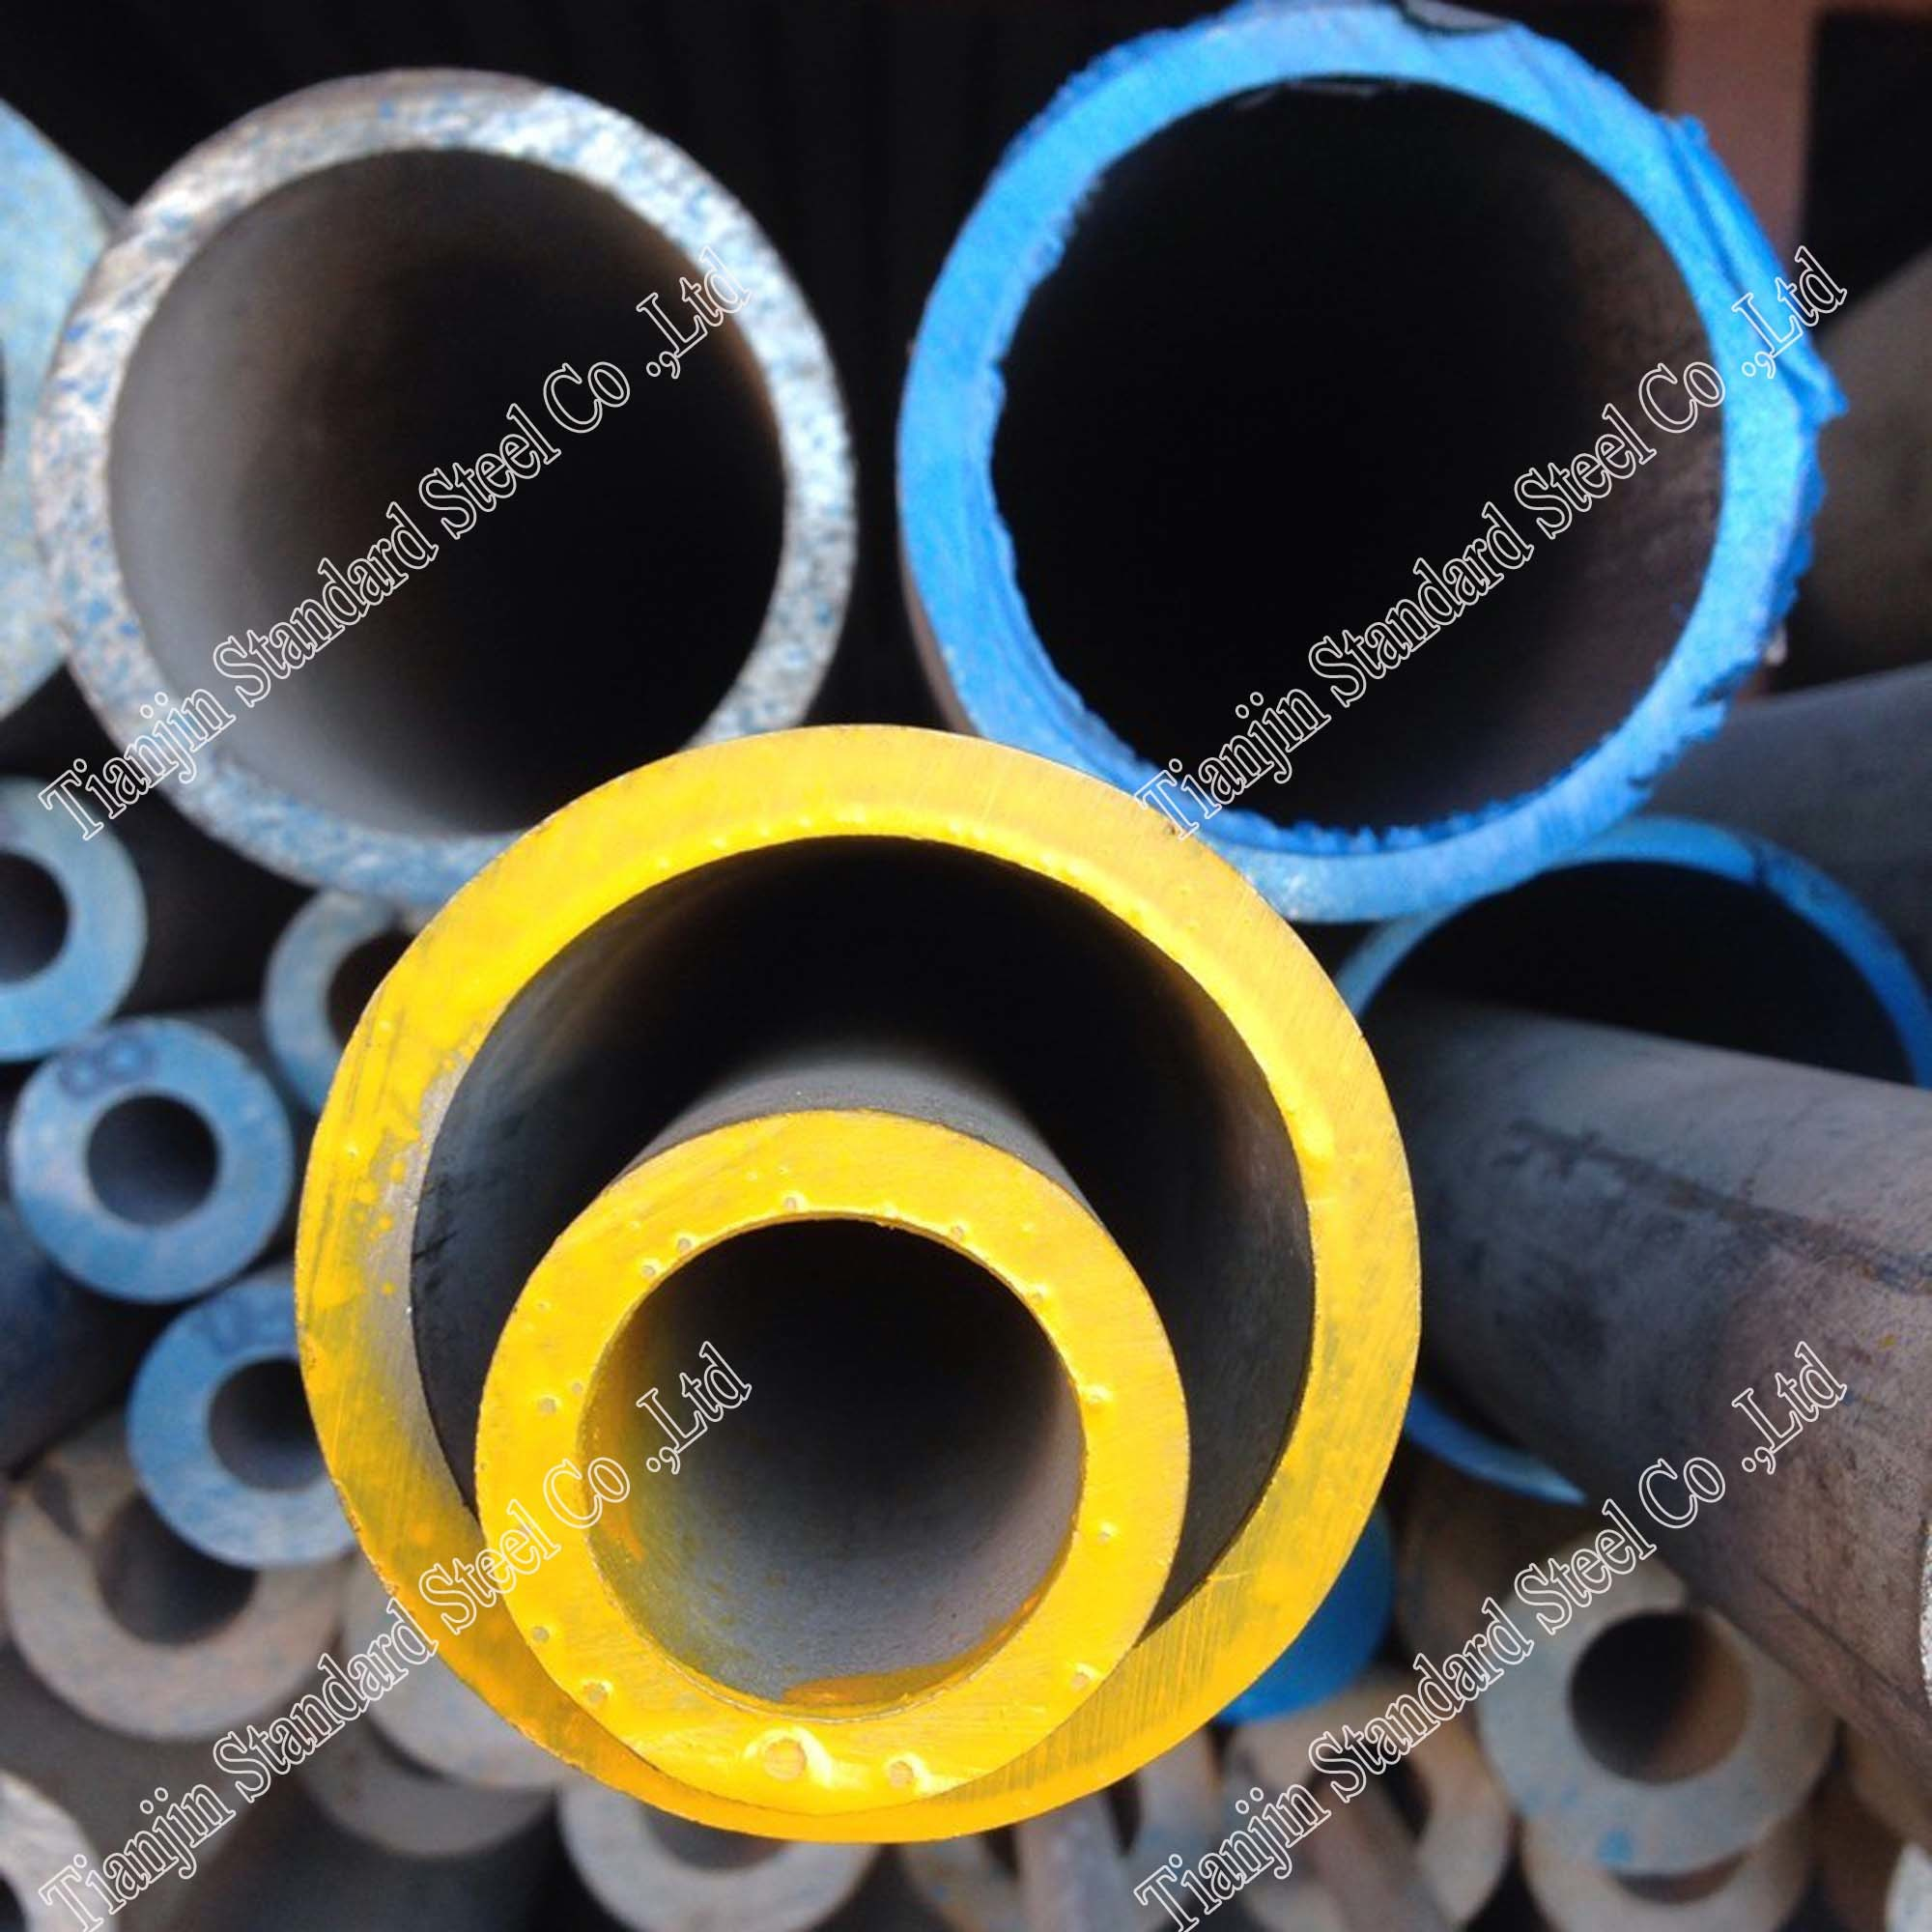 Super Duplex 2205 Stainless Steel Seamless Tube